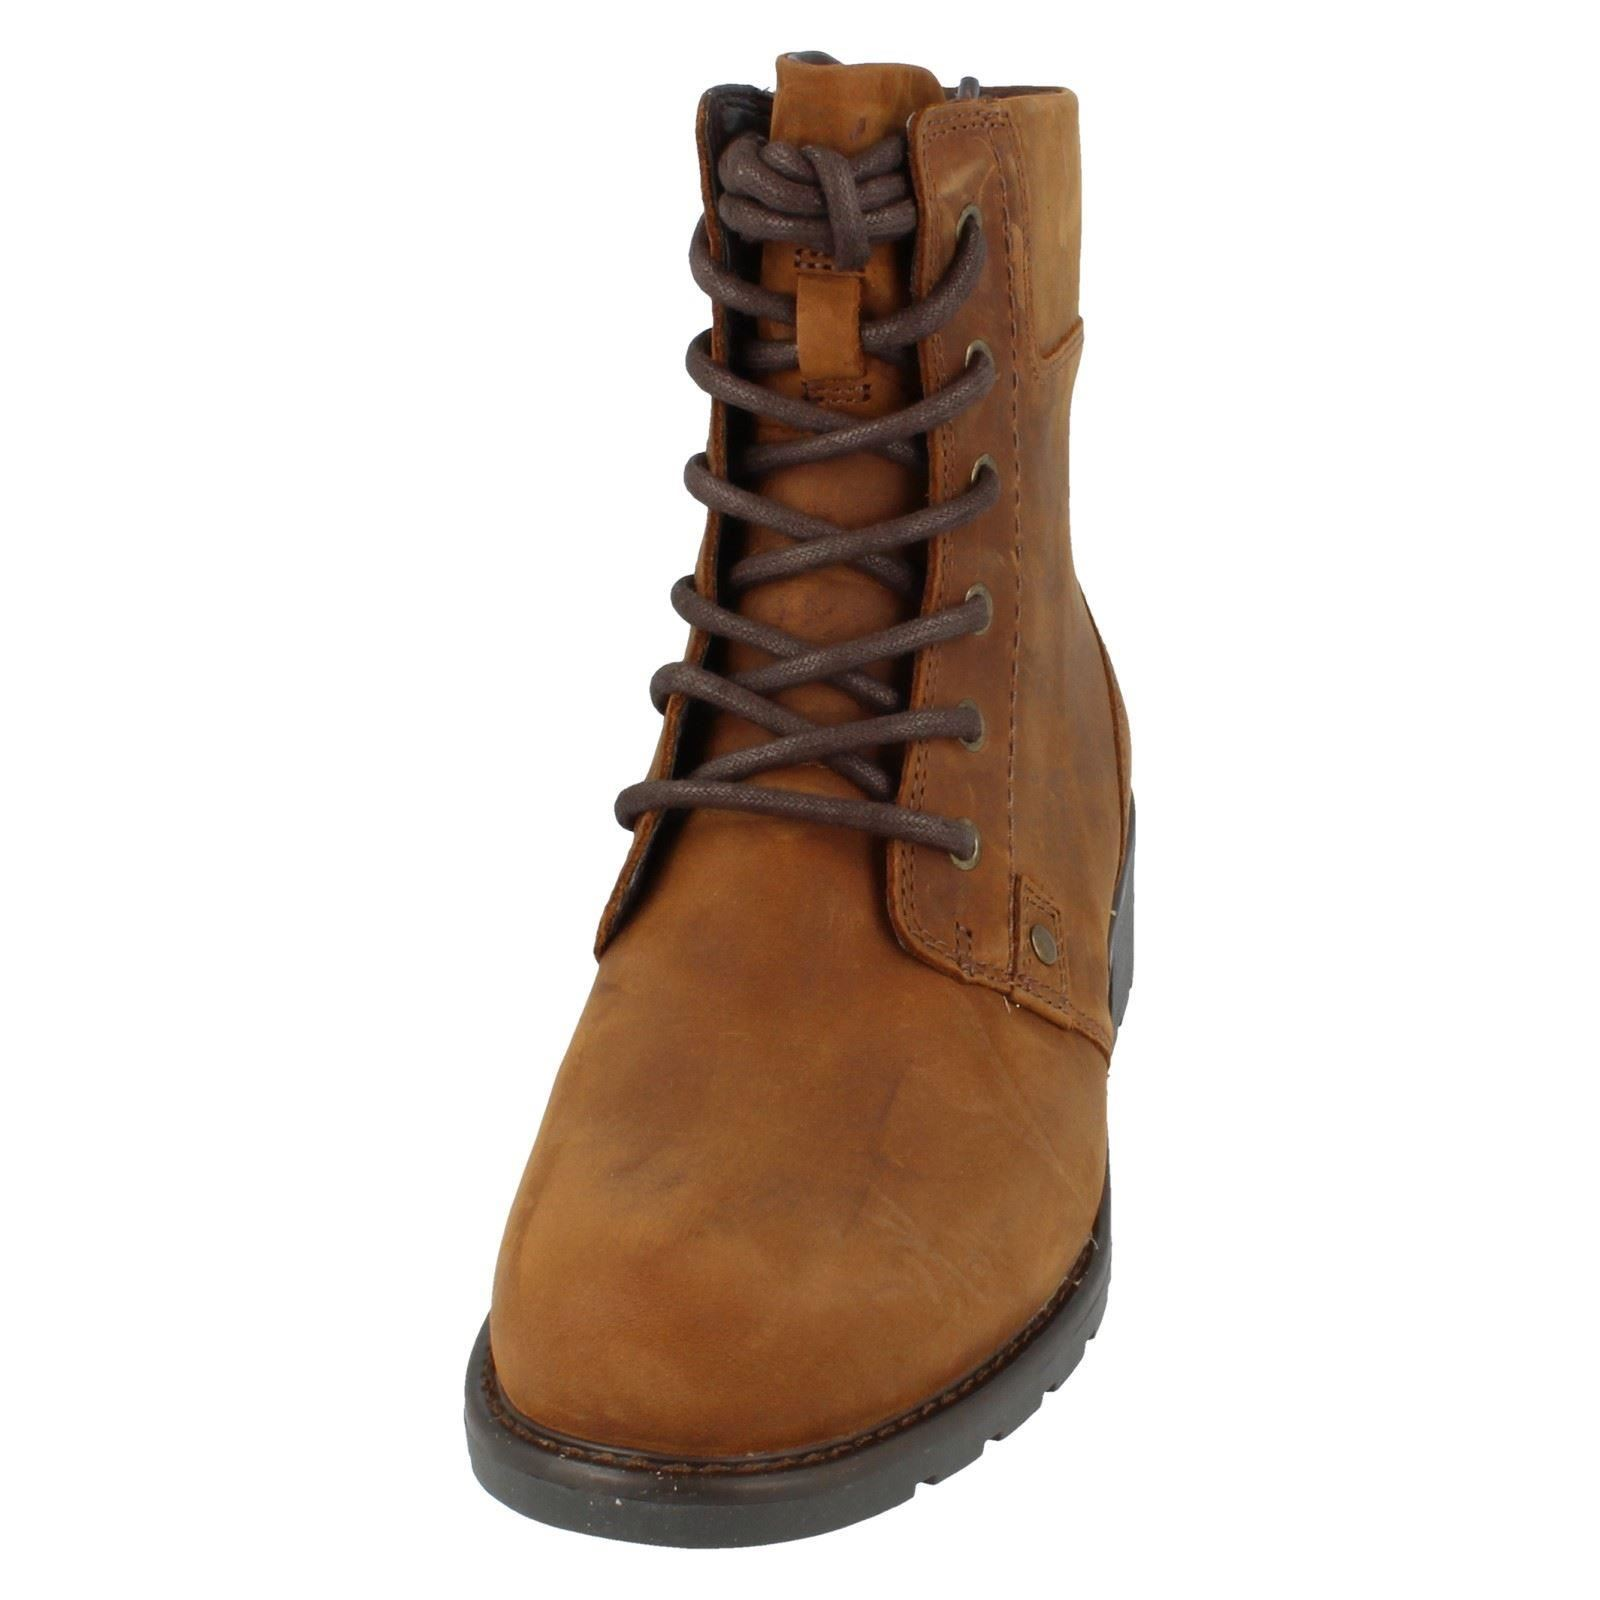 Ladies-Clarks-Casual-Lace-Up-Inside-Zip-Nubuck-Leather-Ankle-Boots-Orinoco-Spice thumbnail 18